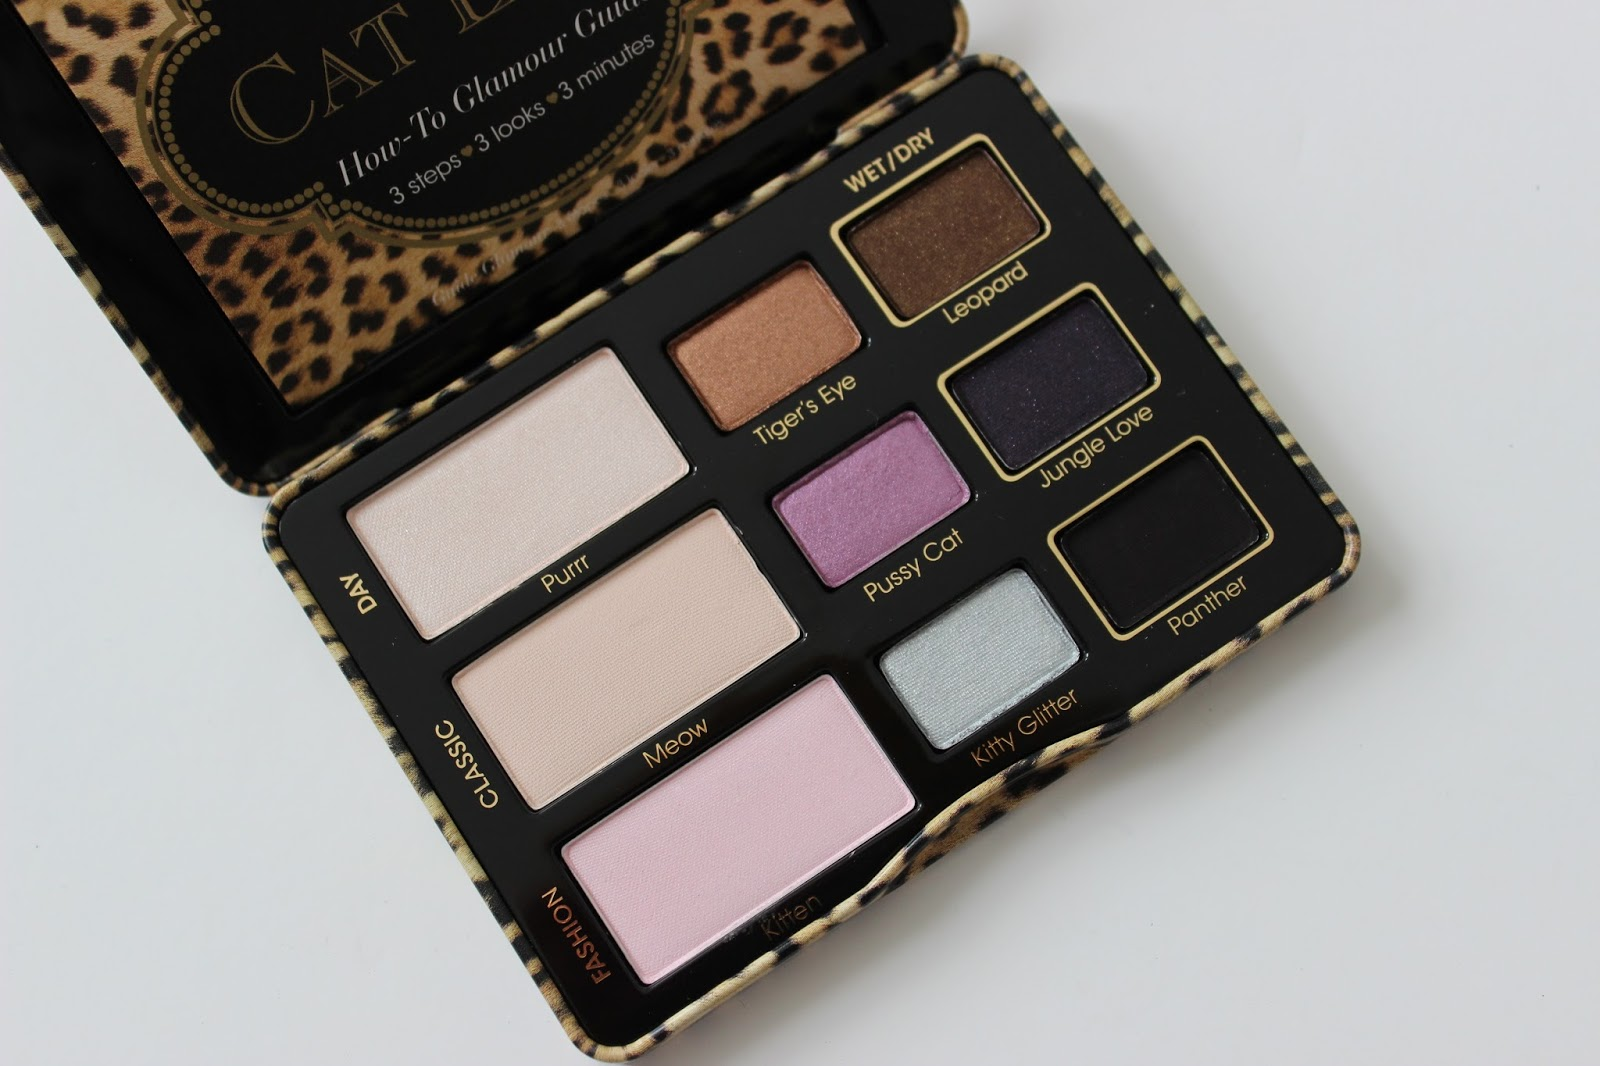 Too Faced Cat Eyes shadow palette eye shadows